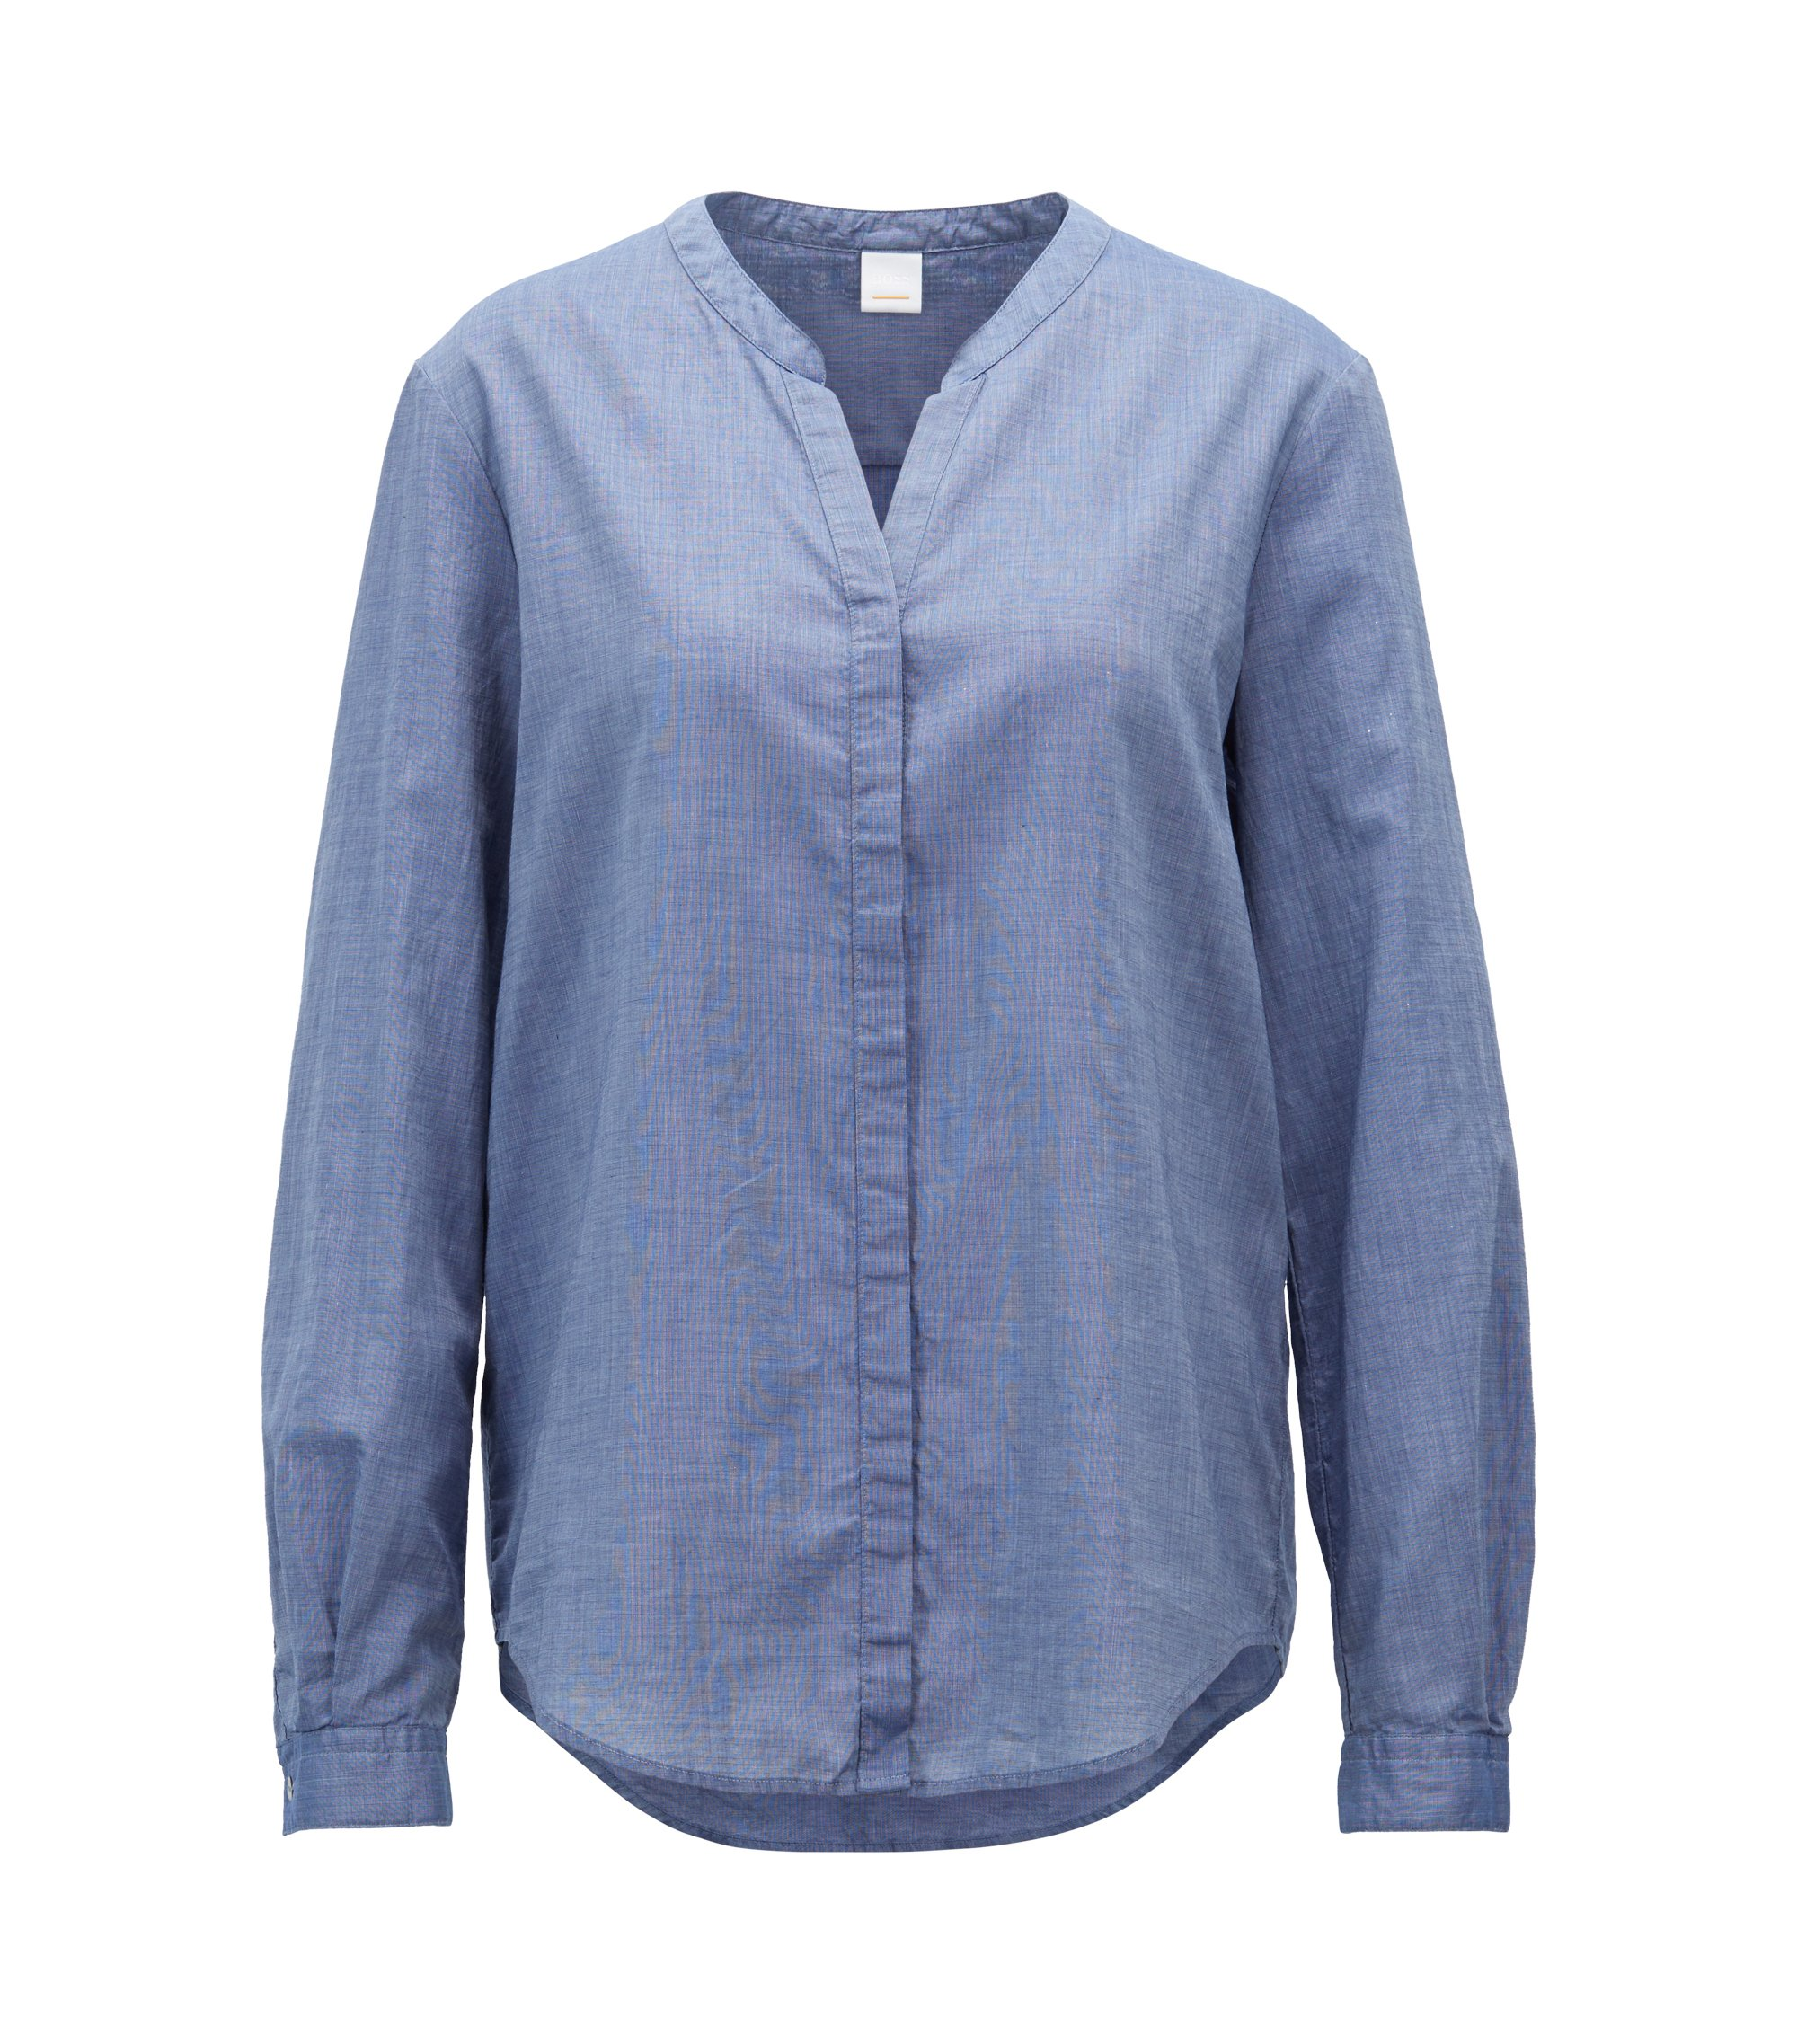 Relaxed-fit blouse in a chambray cotton blend, Blue